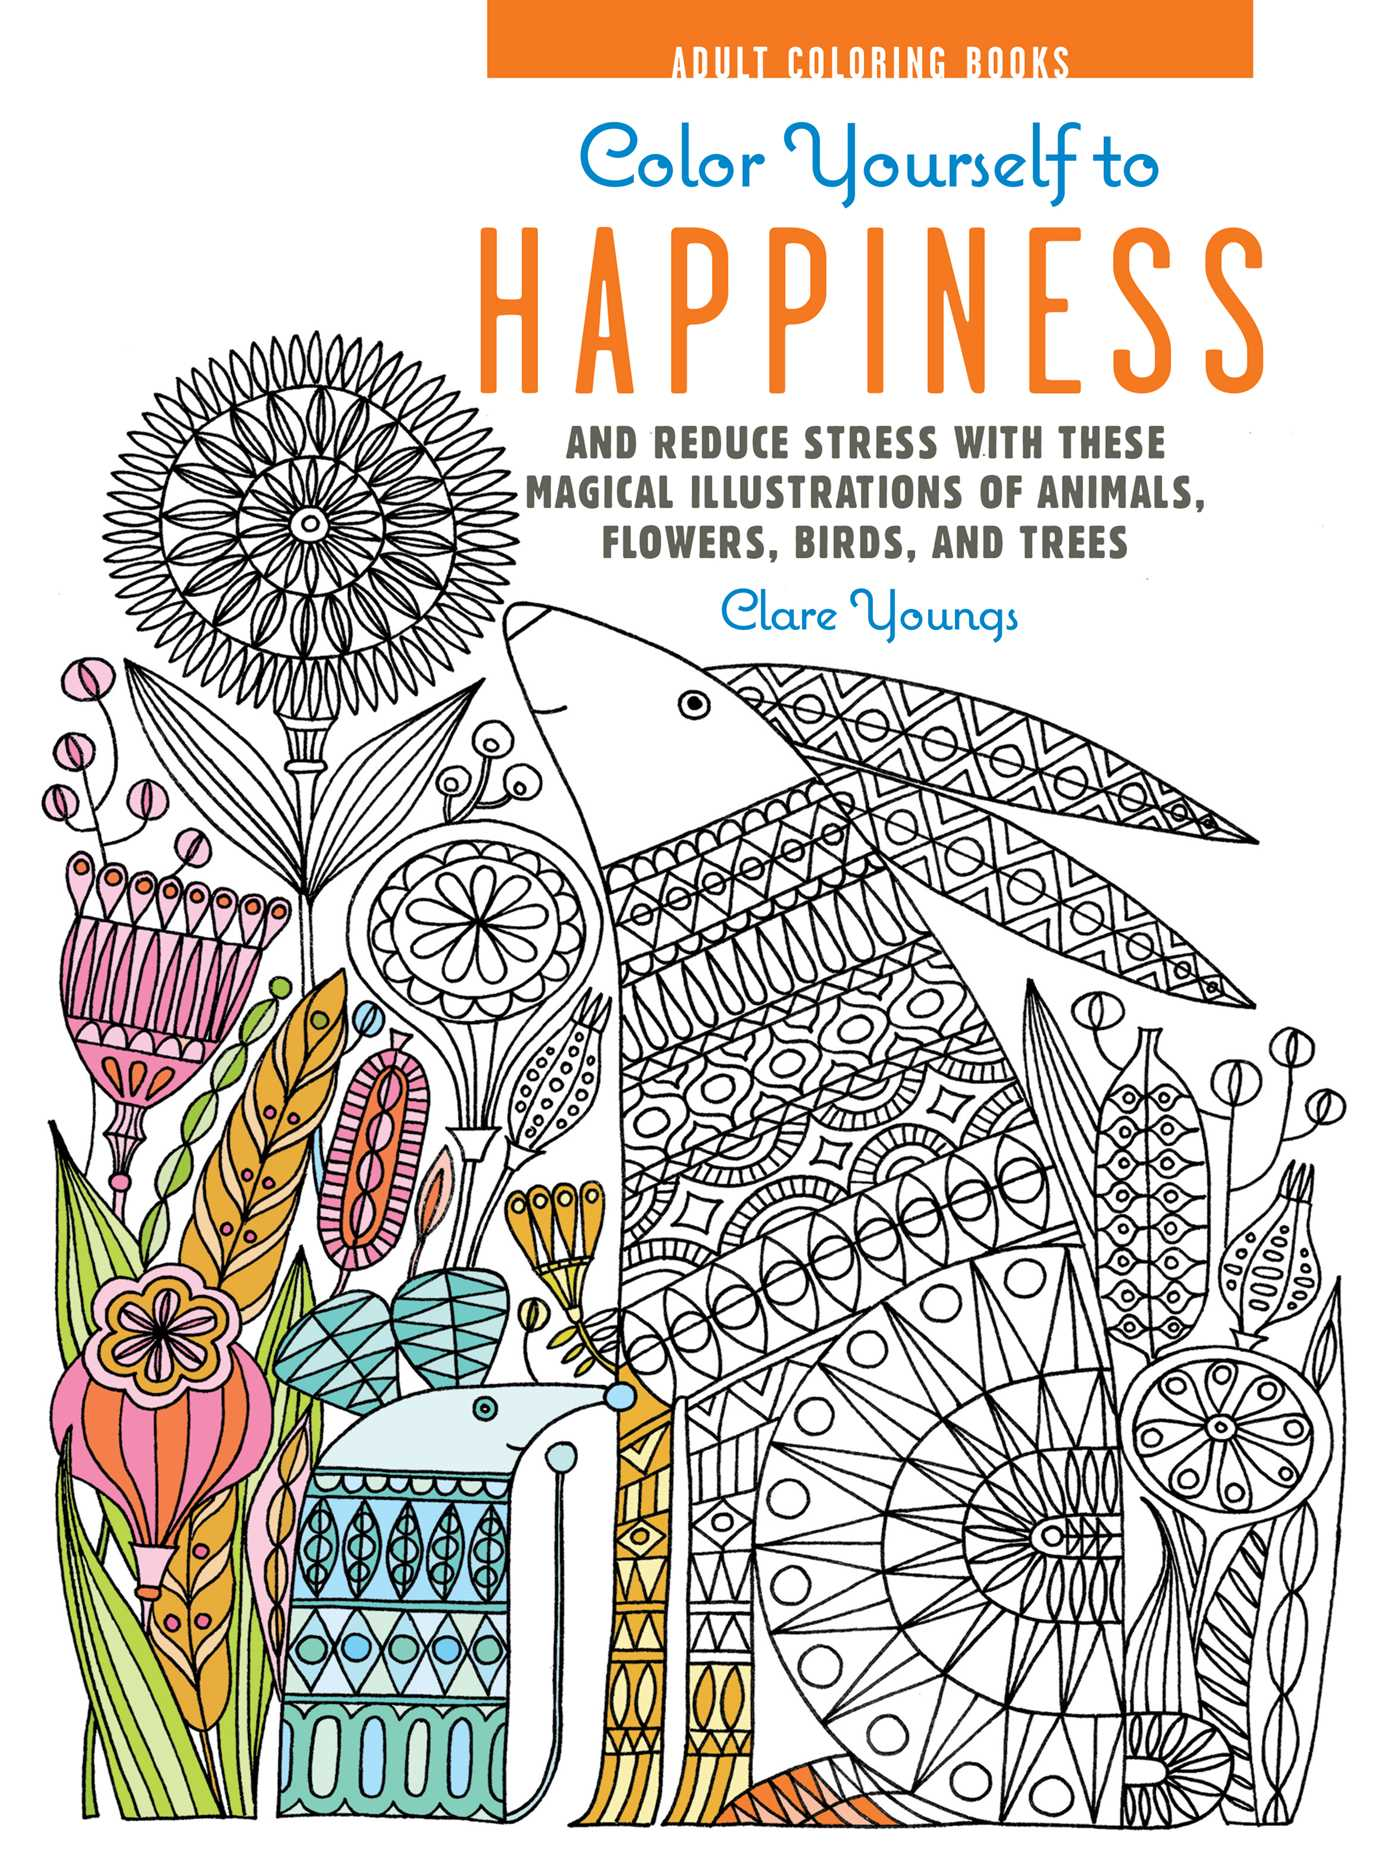 Book Cover Image Jpg Color Yourself To Happiness US Edition Hardcover 9781782493556